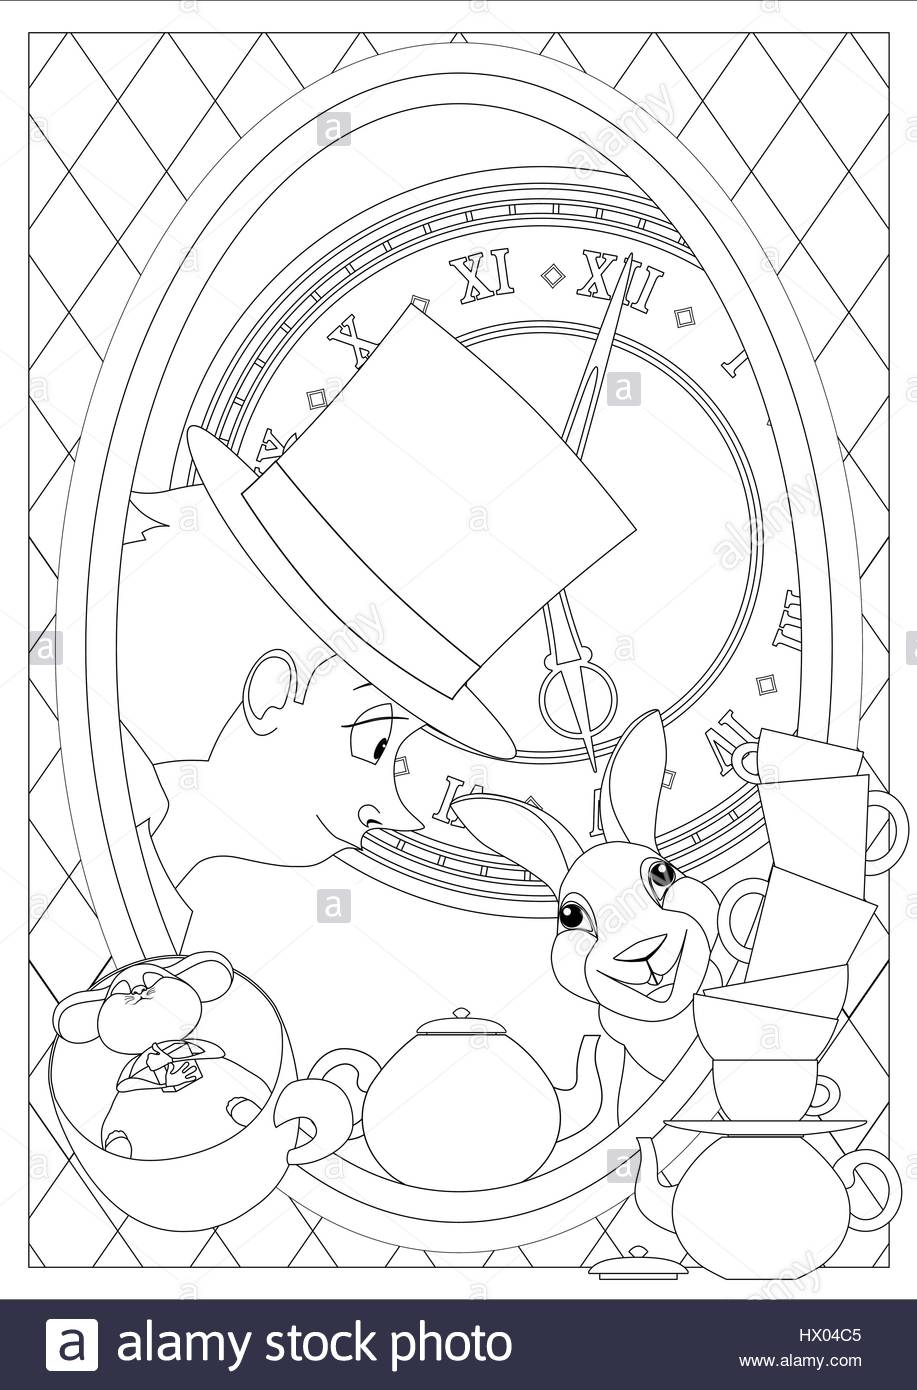 Coloring Page. Alice in Wonderland. Mad tea party. Hatter, Dormouse ...